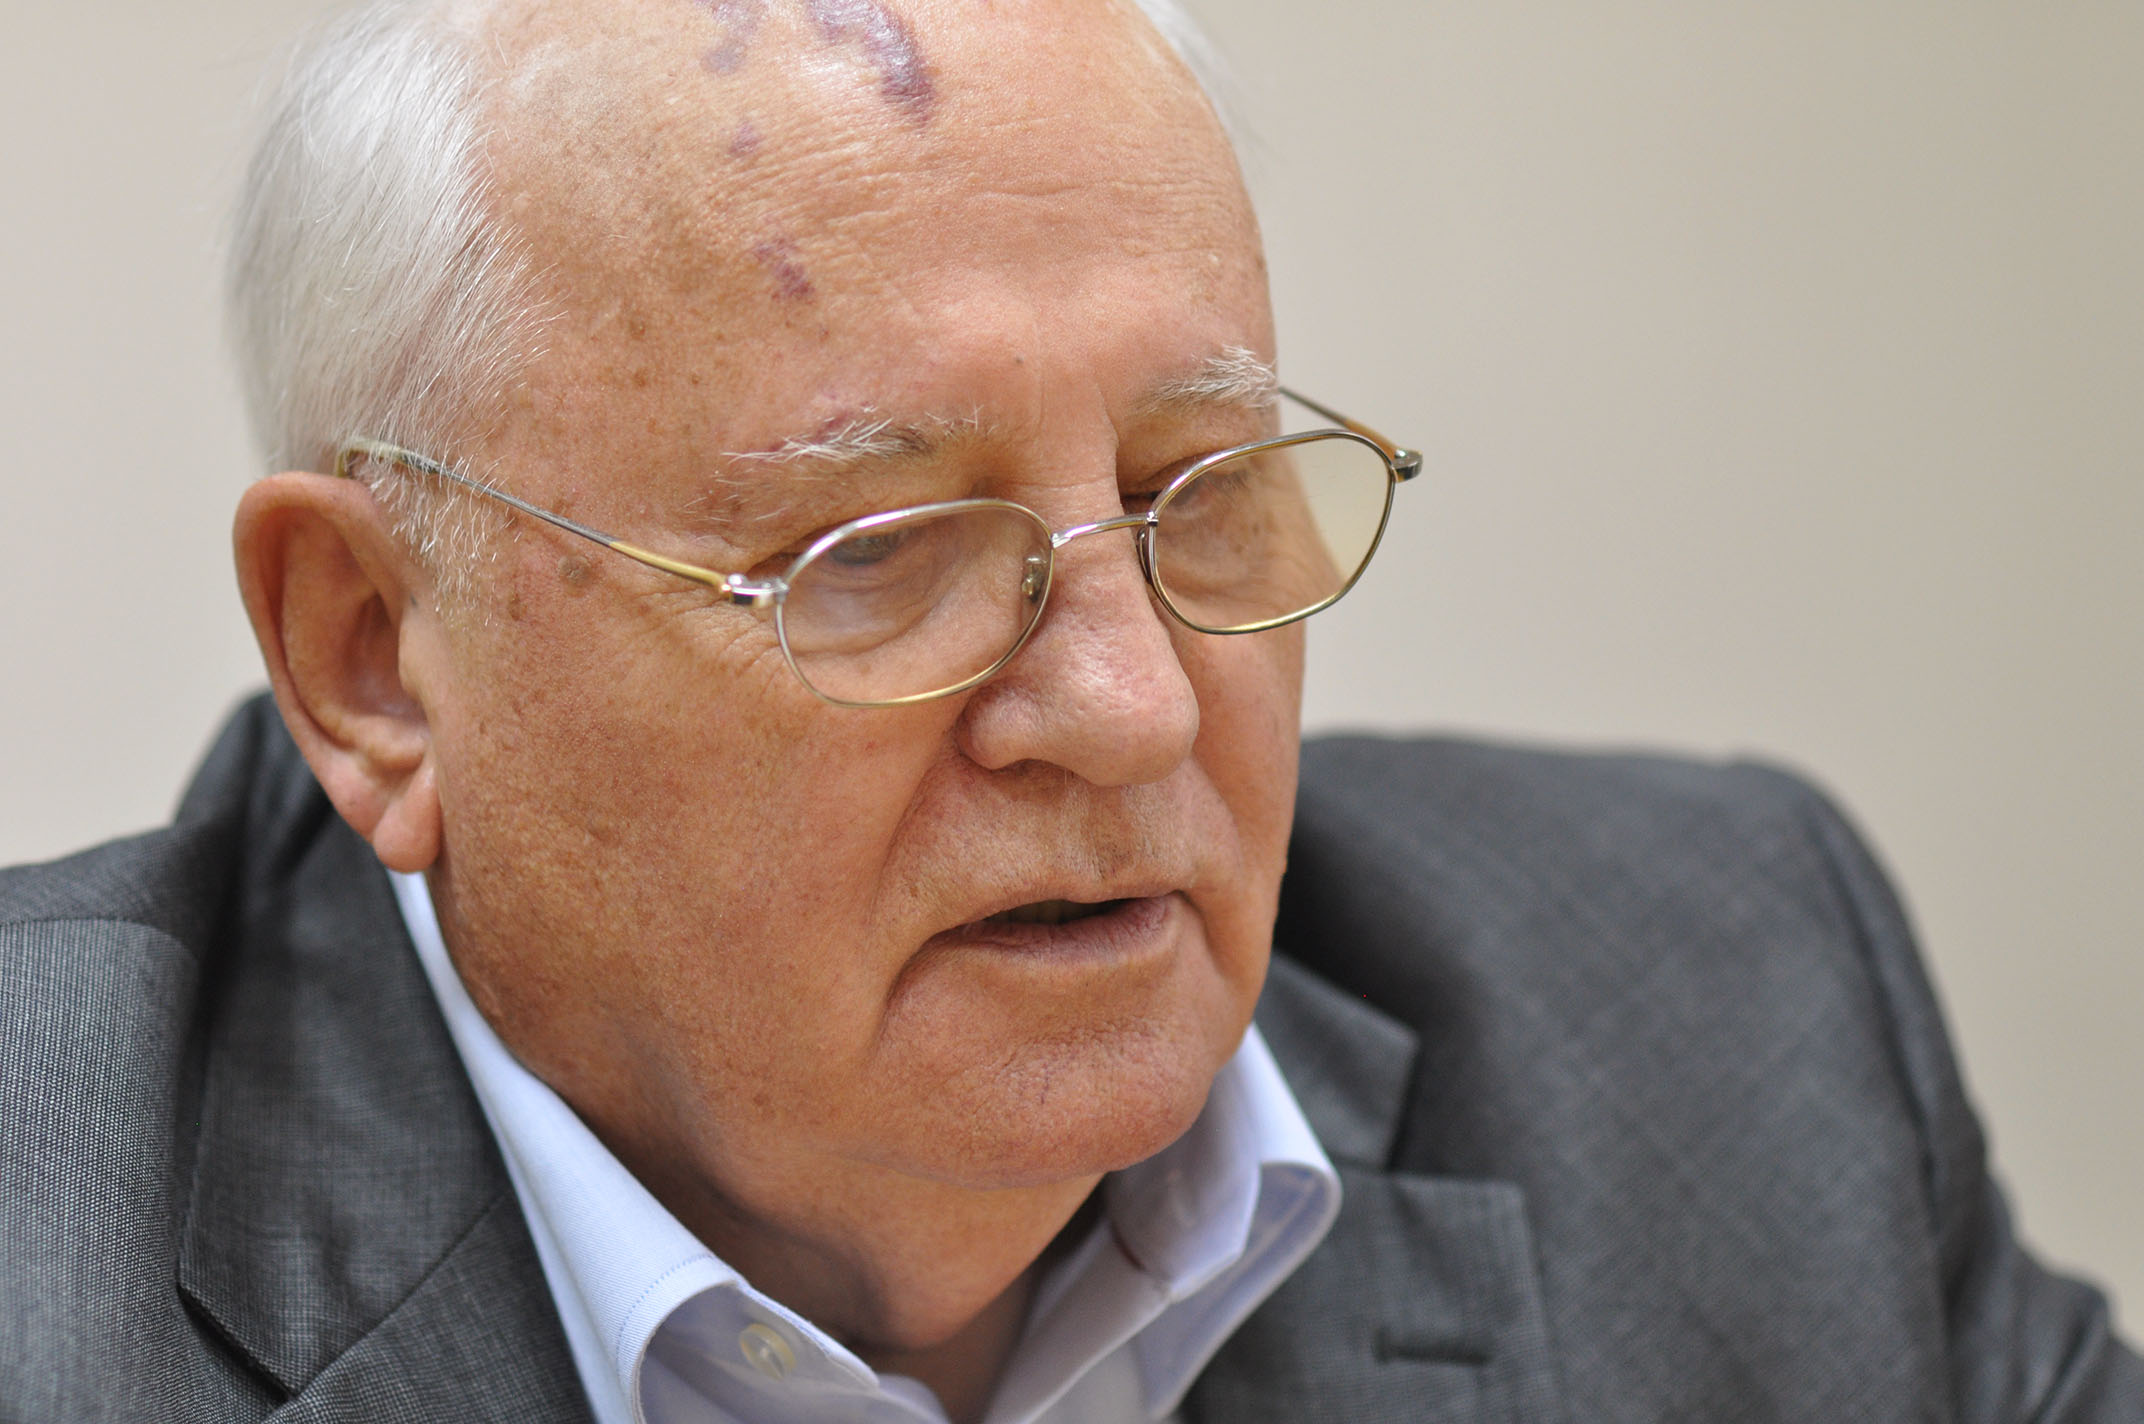 Gorbachev: A Voice of Sanity from a Past that Has Become a Foreign Country